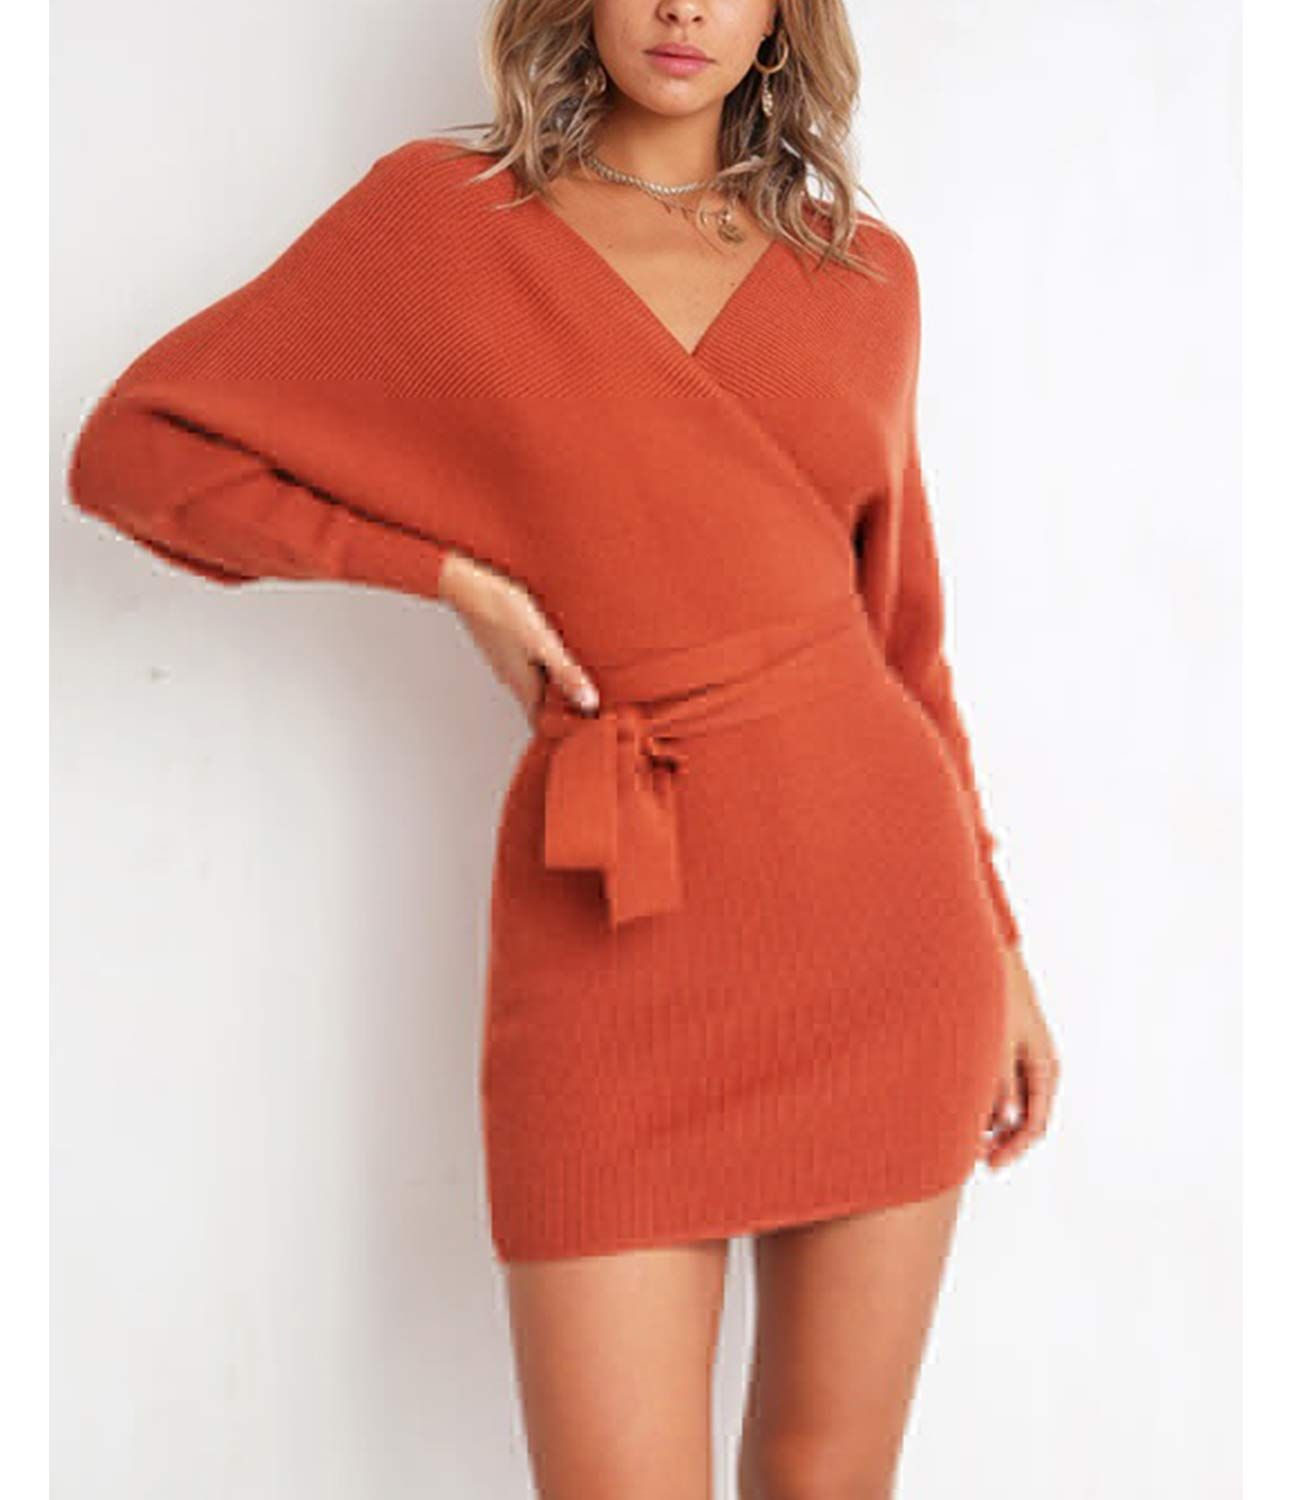 ba7fbbcc Mansy Womens Sexy Cocktail Batwing Long Sleeve Backless Mock Wrap Knit  Sweater Mini Dress ** Want to know more, click on the image.